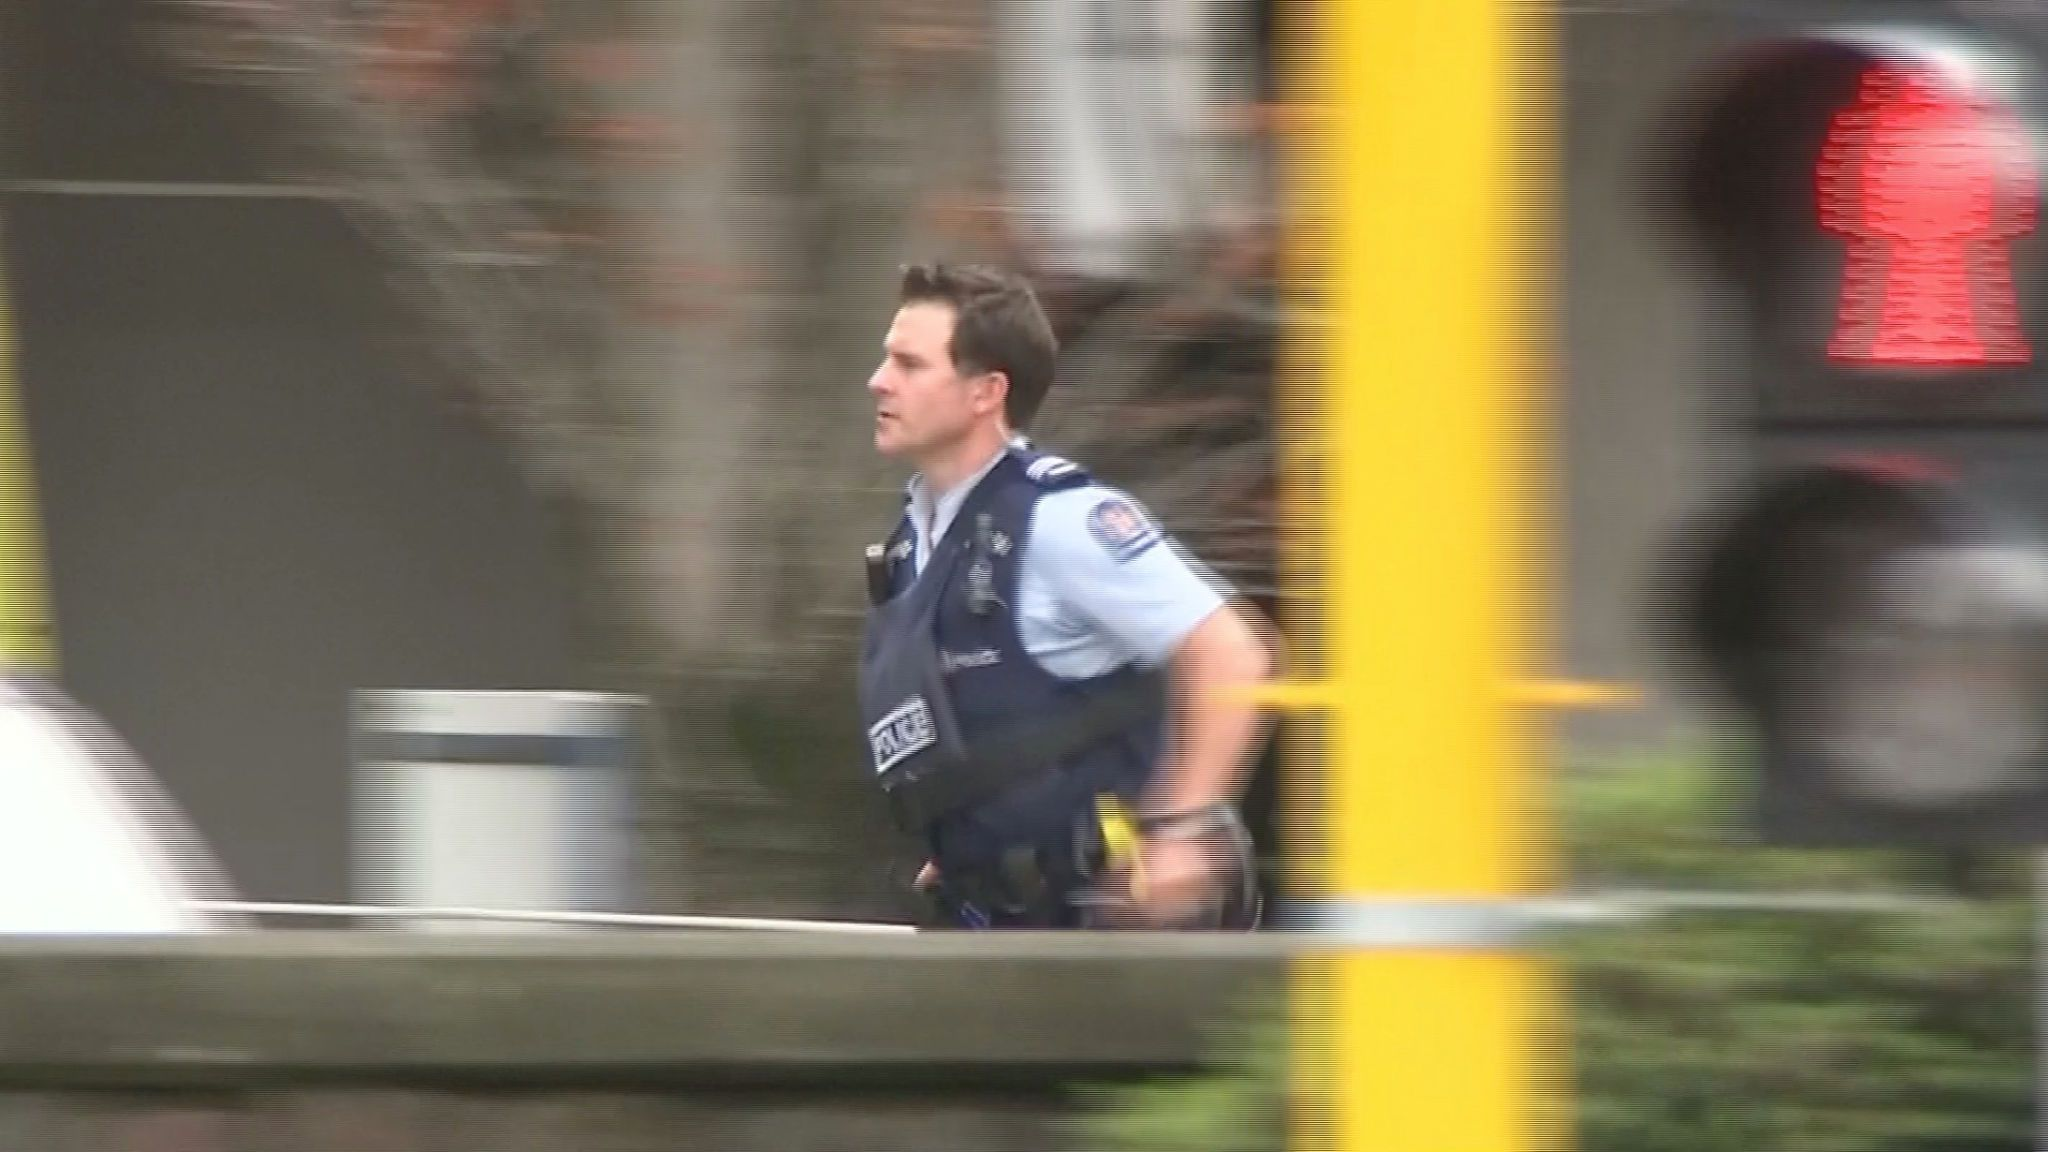 Nz Shooting Footage News: New Zealand Shootings: YouTube & Facebook Remove Video